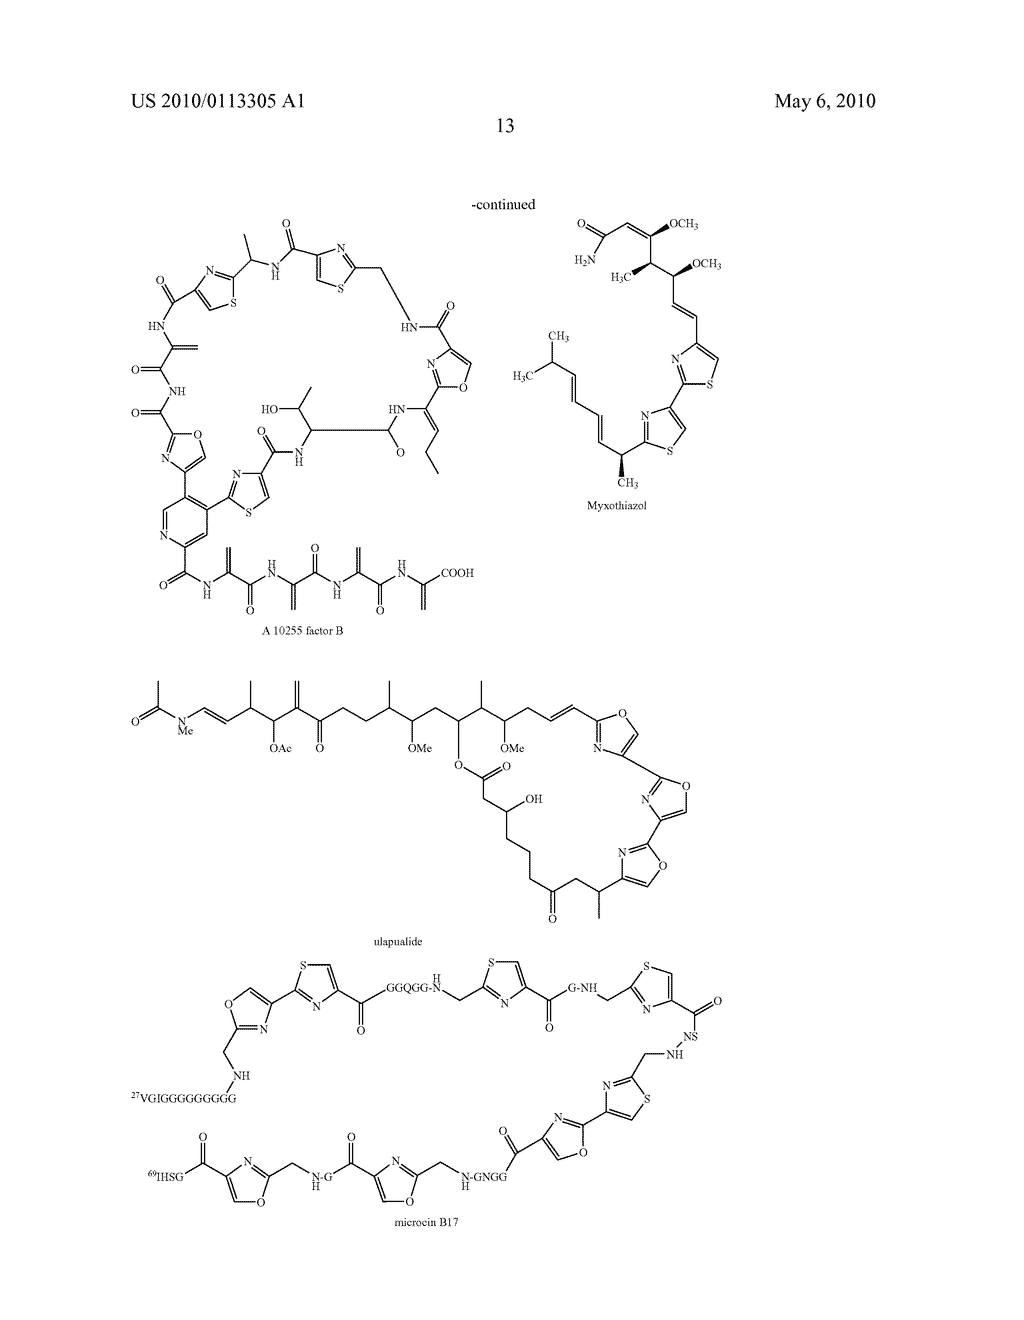 OXAZOLE AND THIAZOLE COMBINATORIAL LIBRARIES - diagram, schematic, and image 20